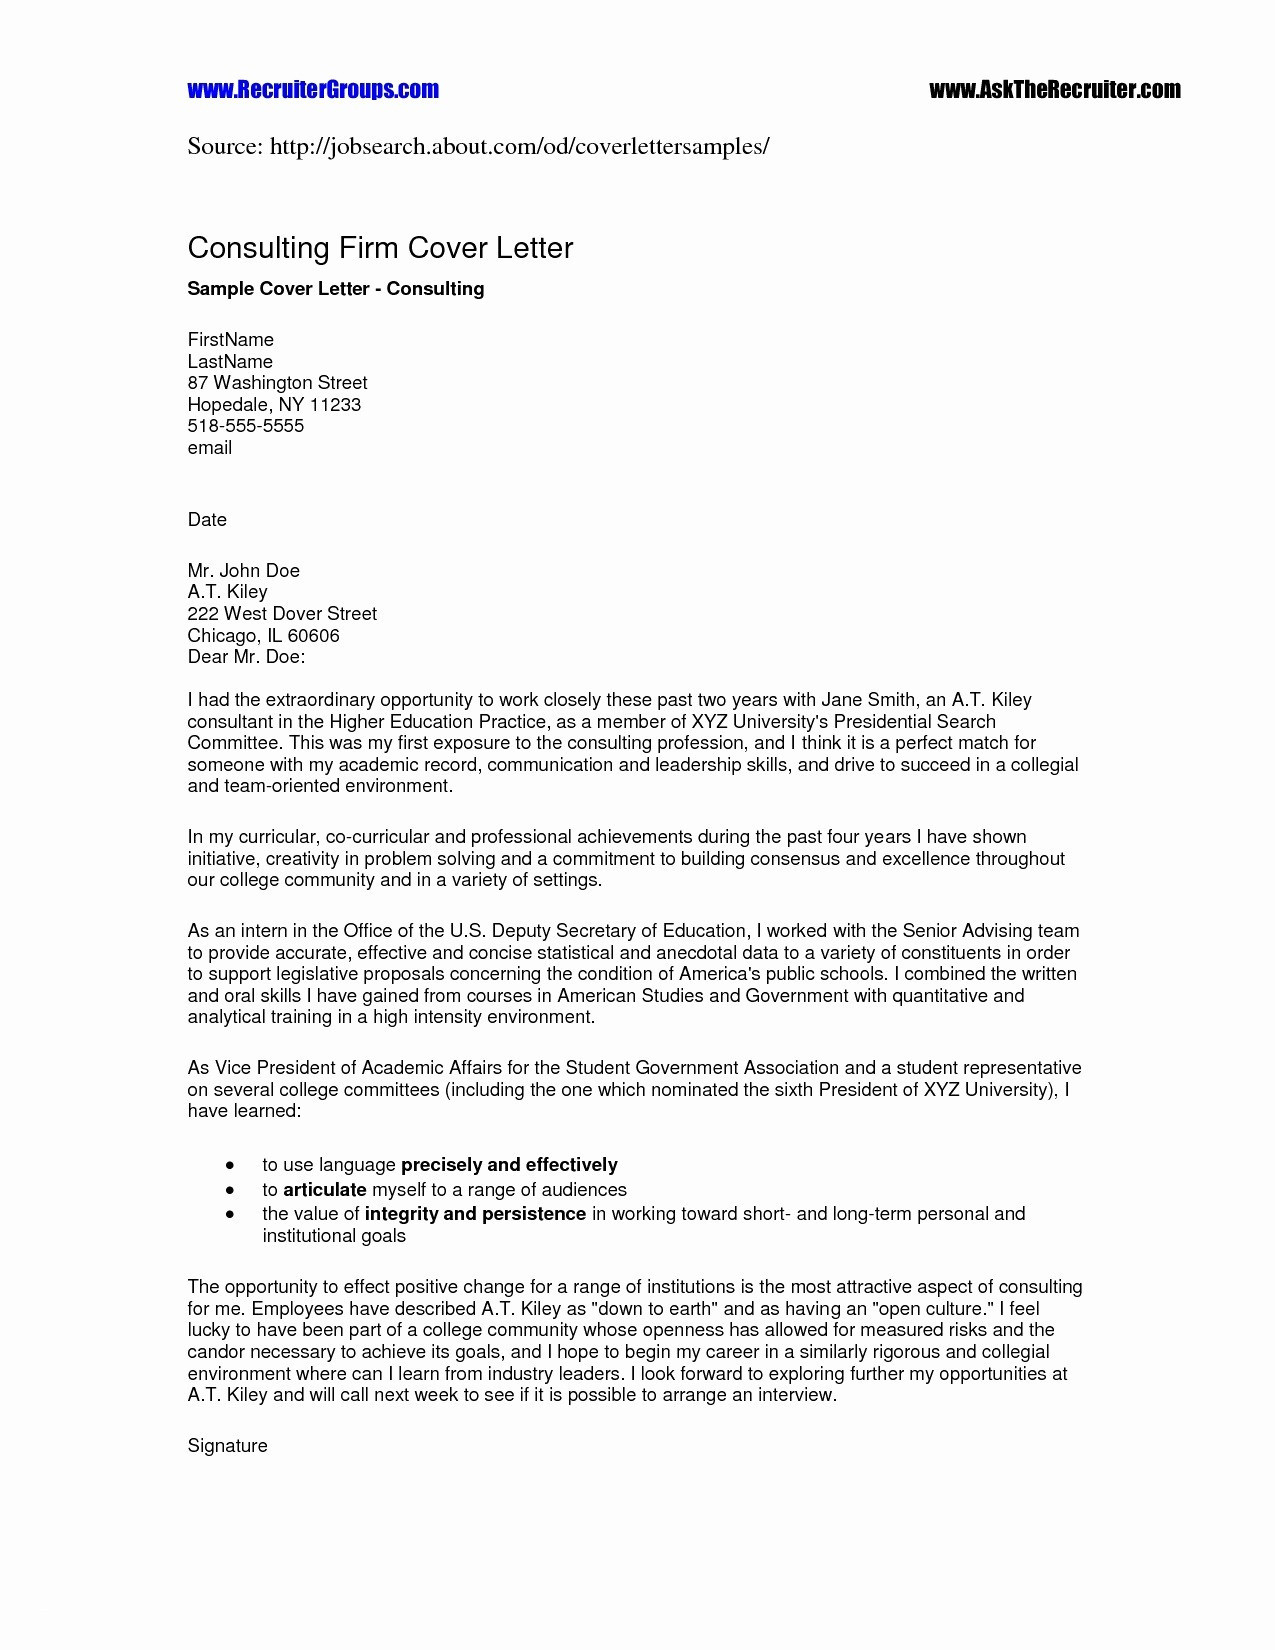 Free Letter to Santa Template Word - Simple Resume Templates Word Fresh Word Free Resume Templates Unique